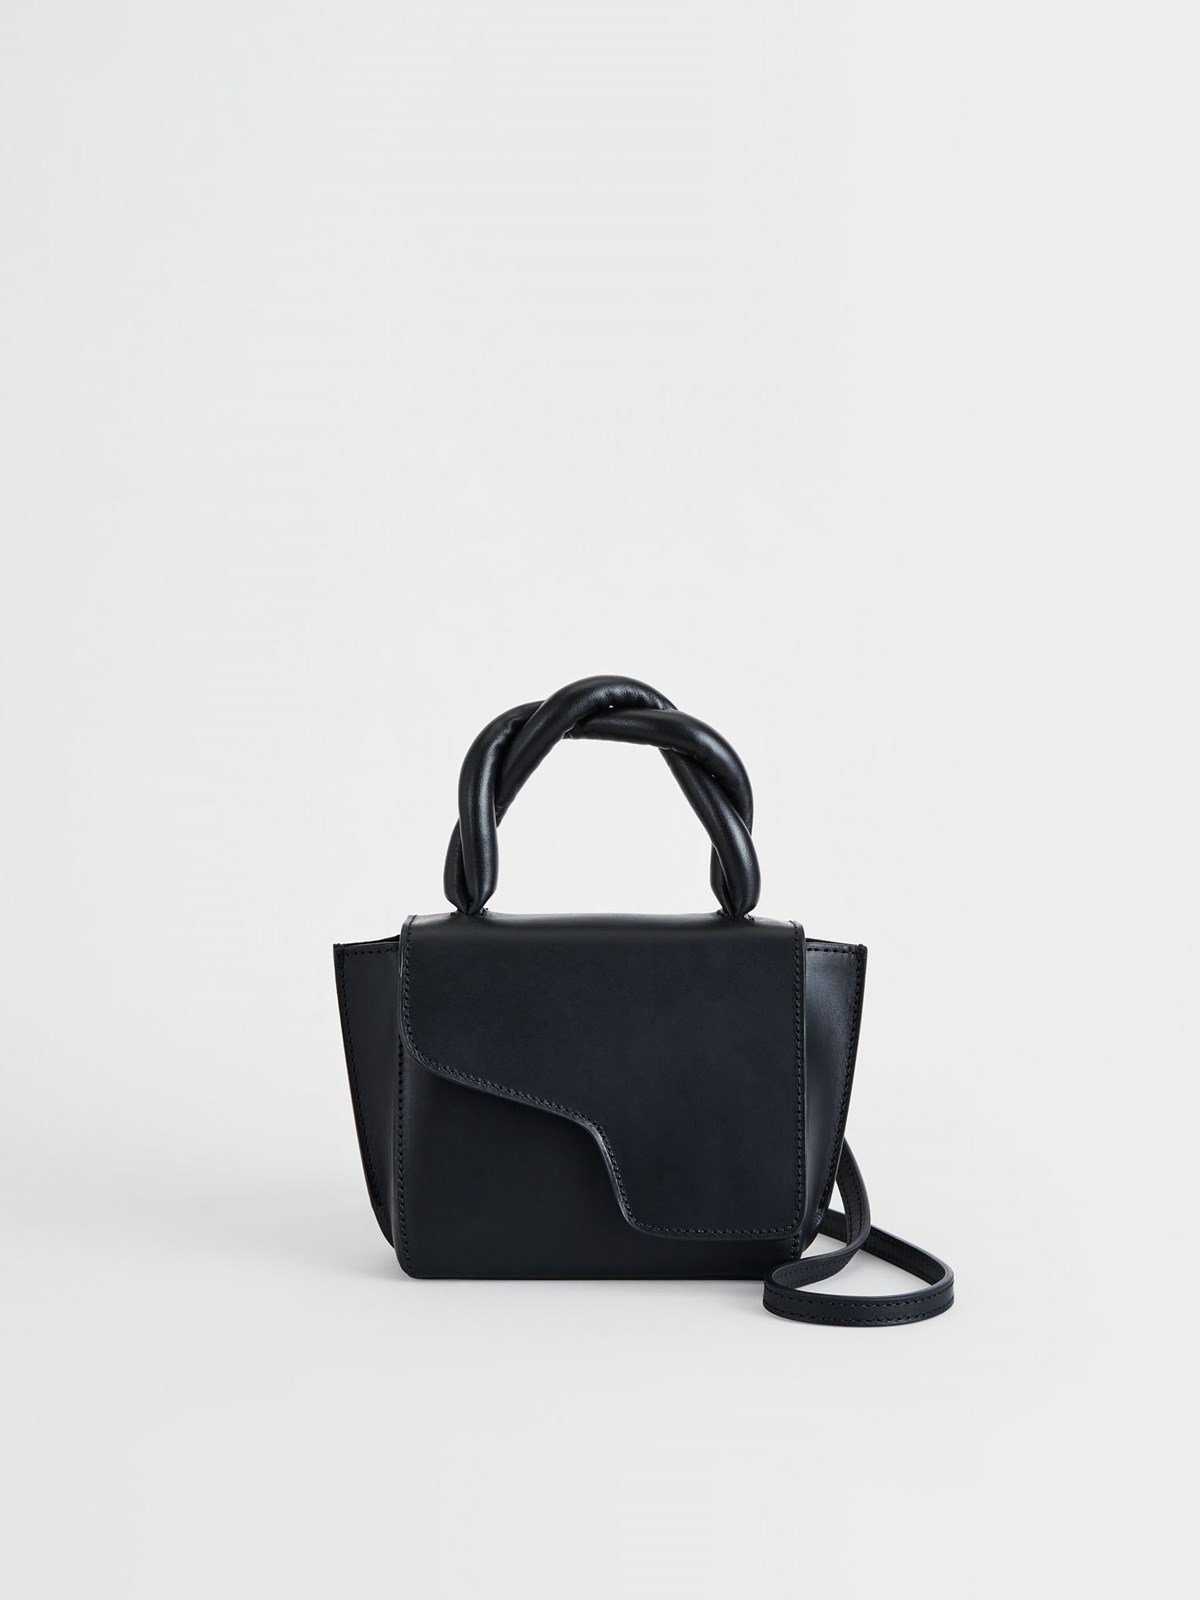 Montalbano Black Mini handbag